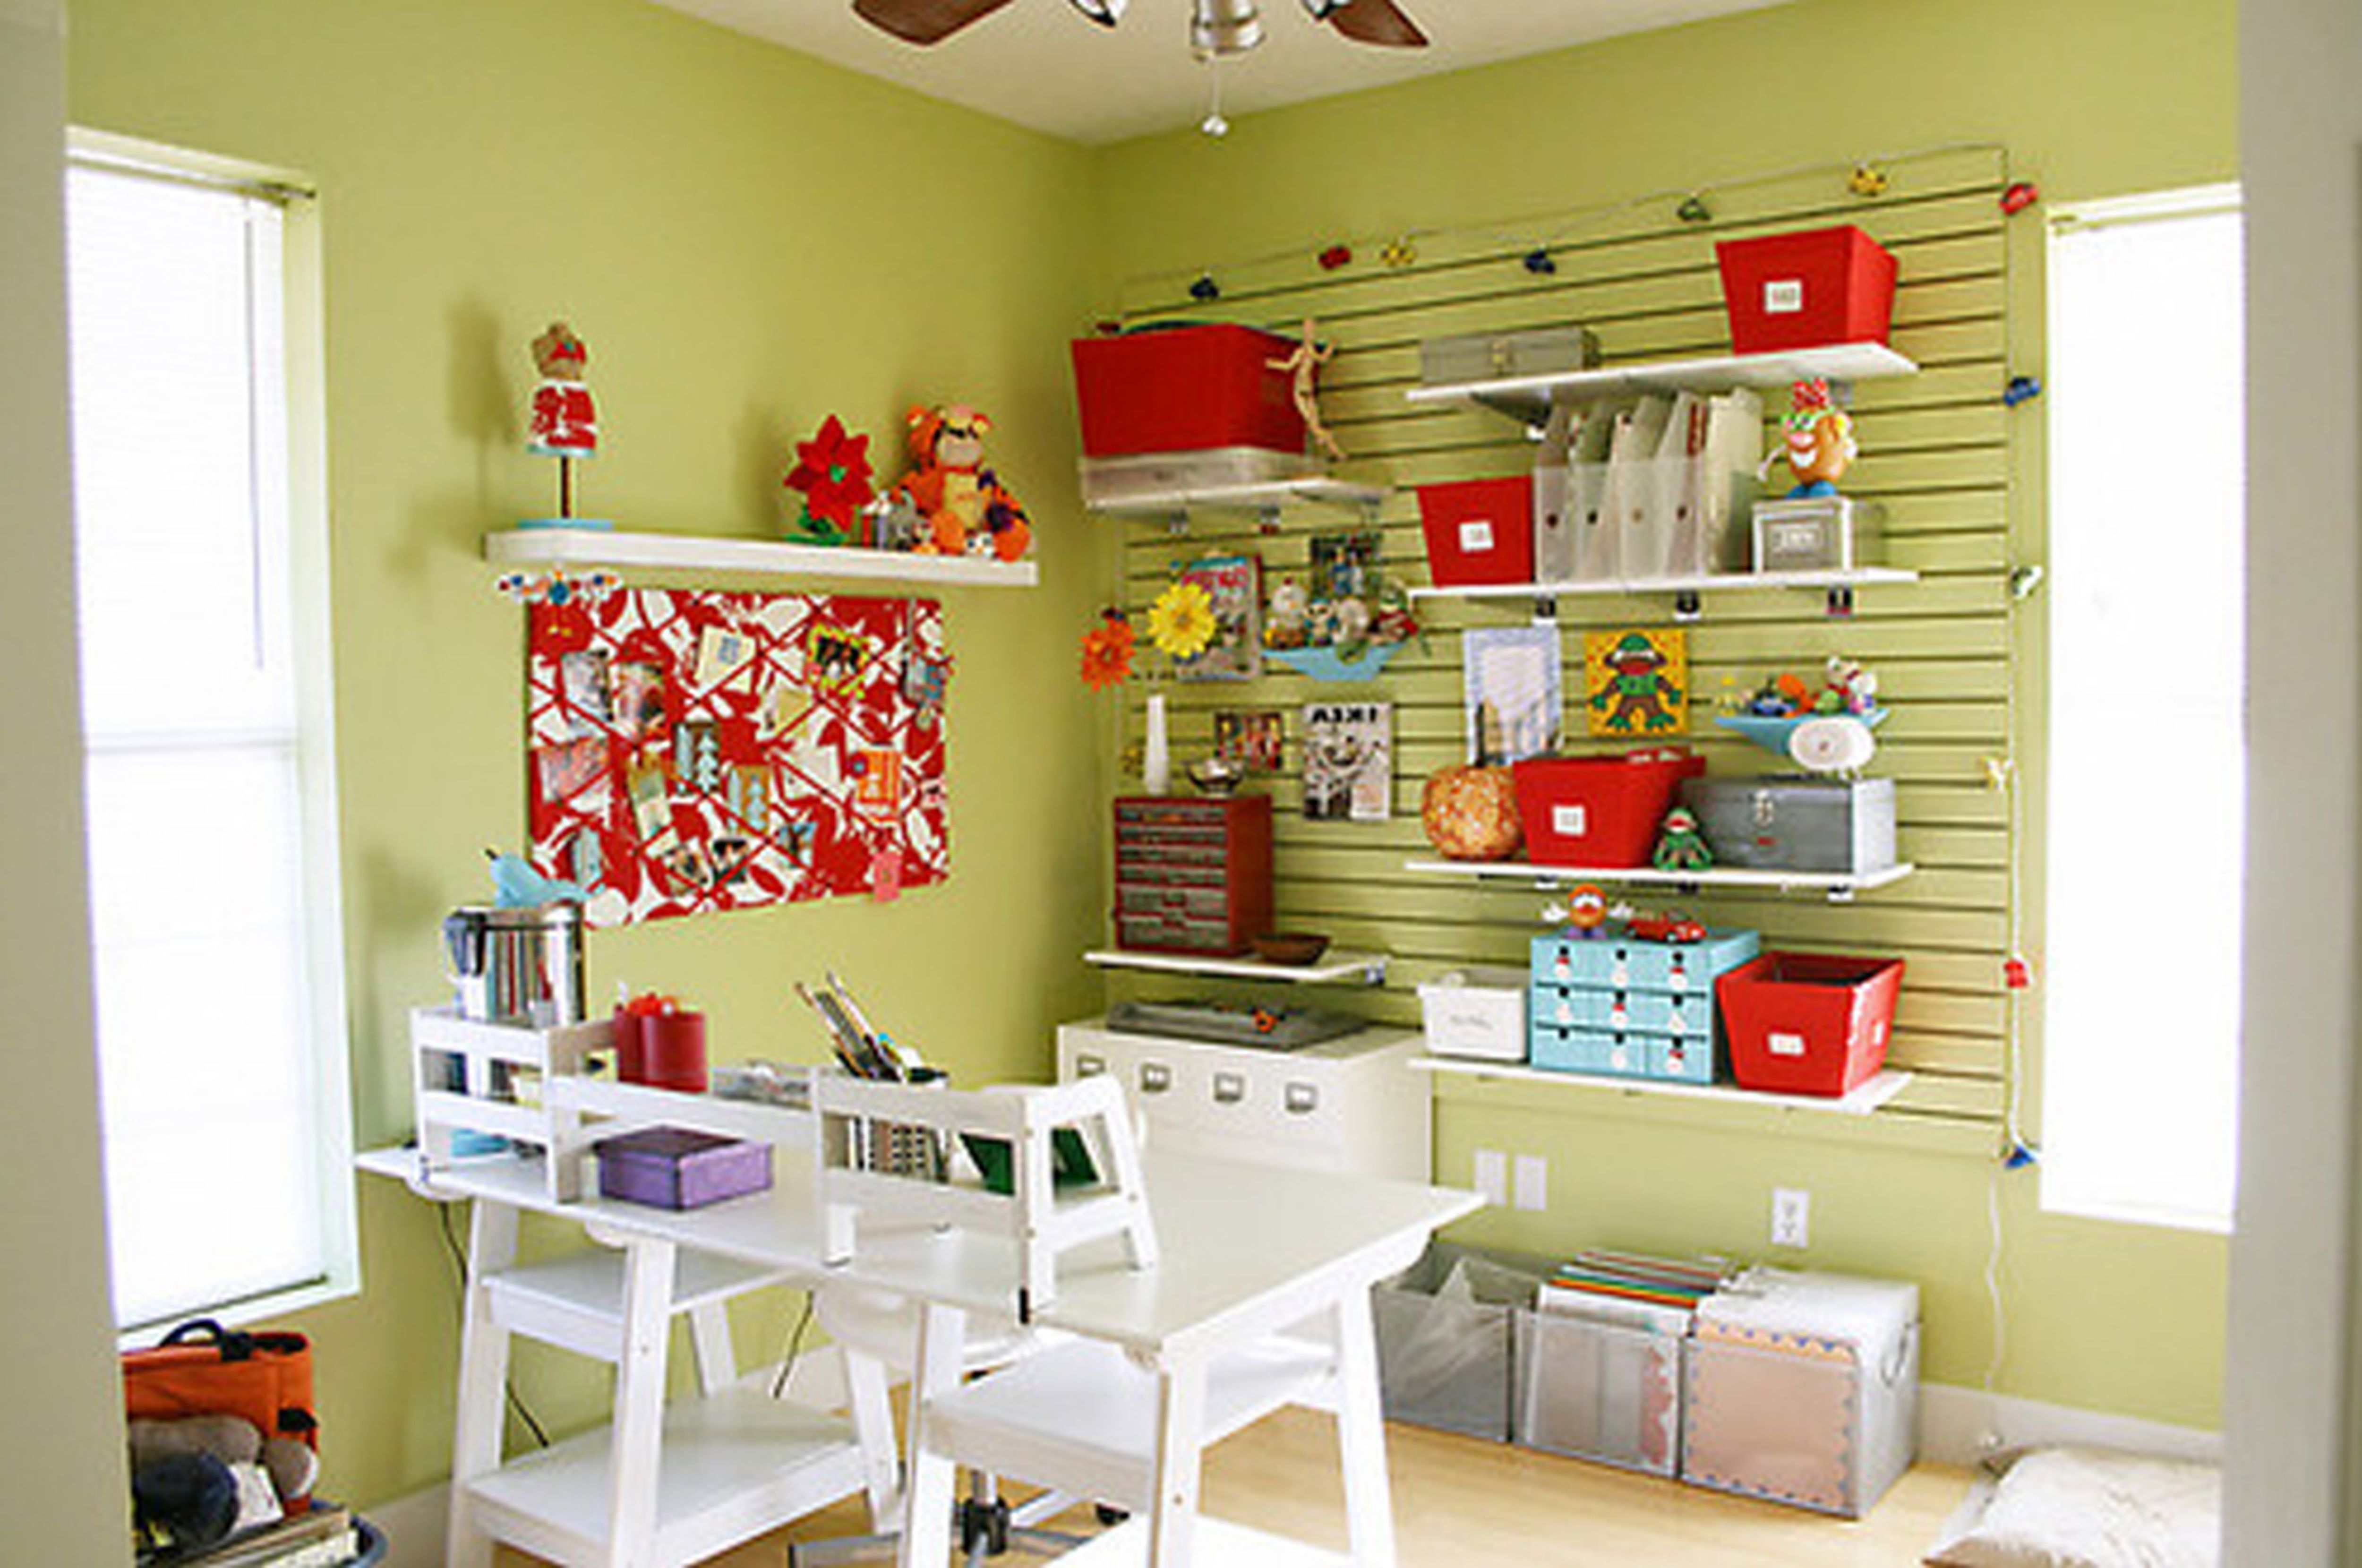 home office ideas - Google Search | Crafty Room | Pinterest | Room